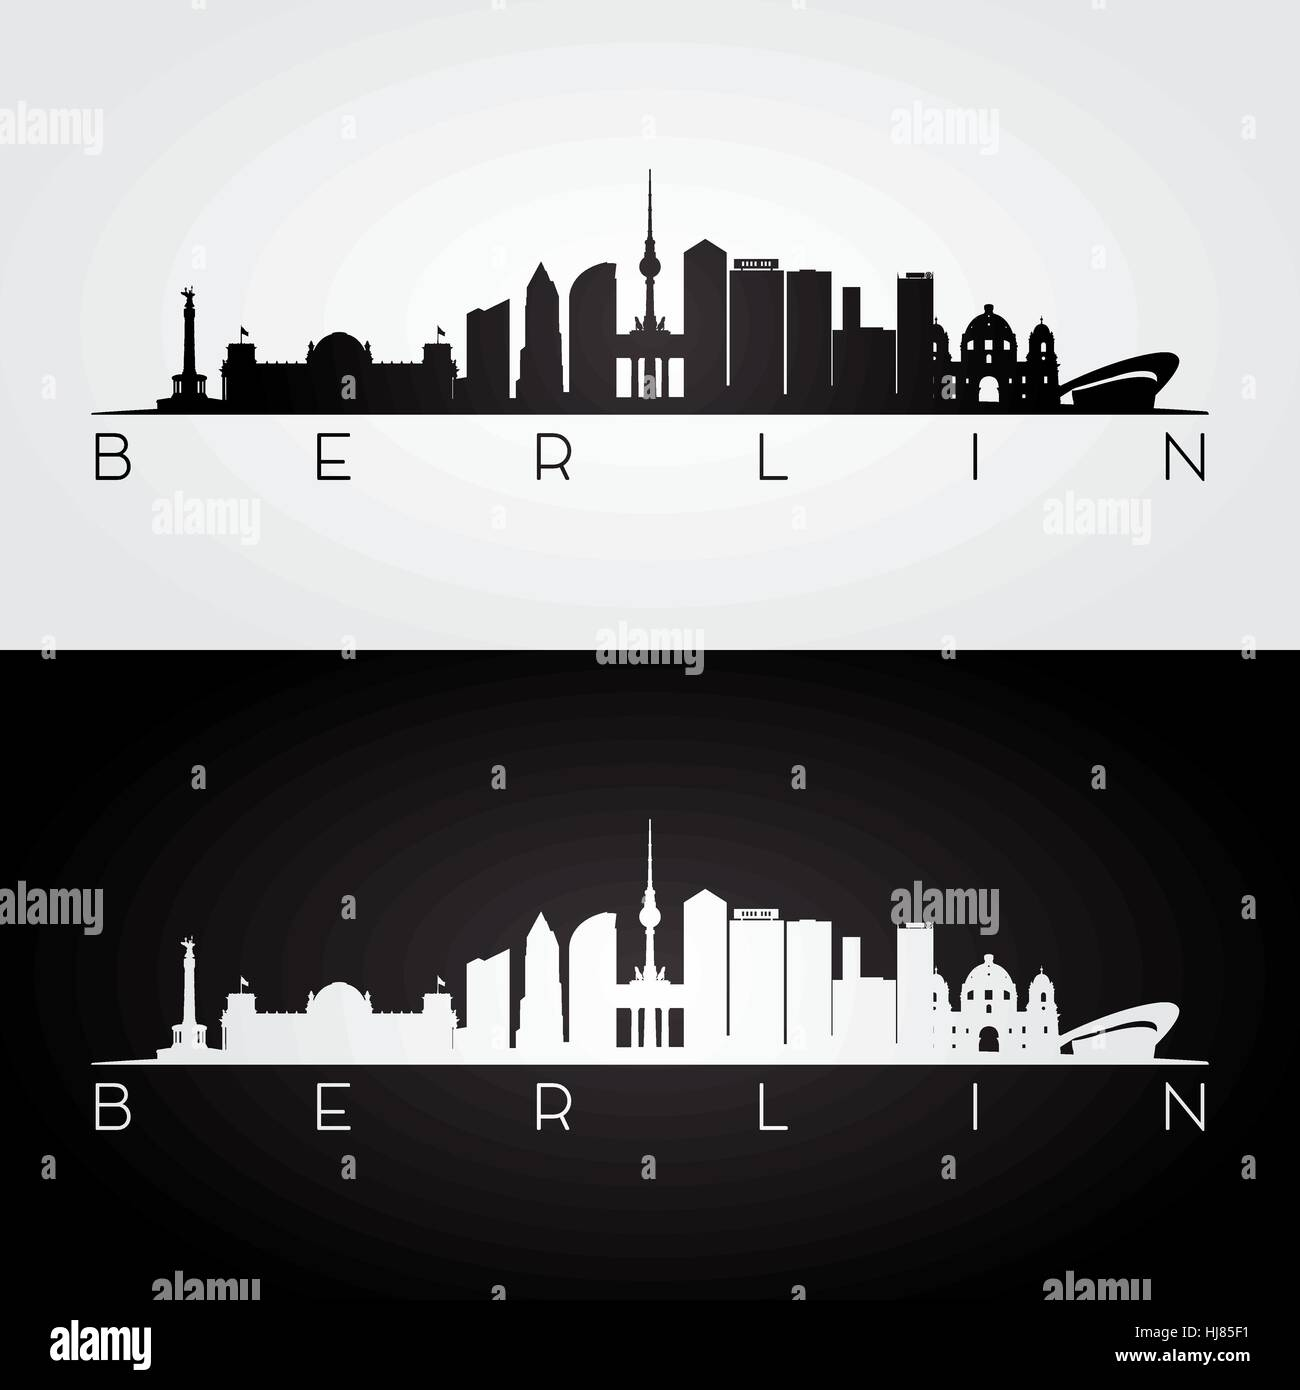 berliner skyline und wahrzeichen silhouette schwarz wei design vektor illustration vektor. Black Bedroom Furniture Sets. Home Design Ideas